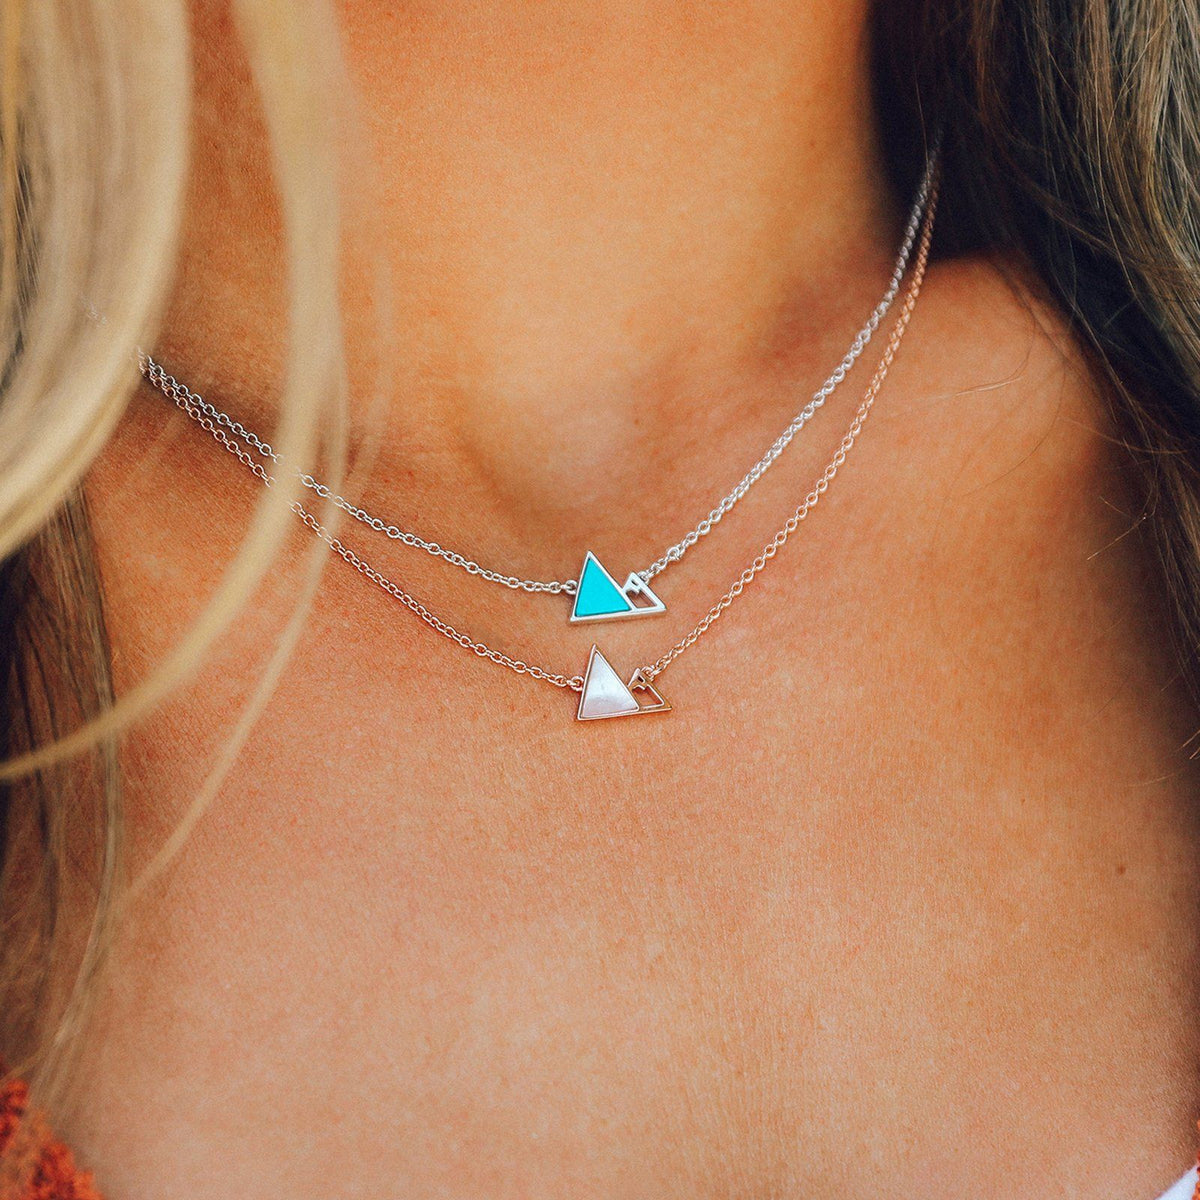 Gem Mountain Necklace Photo 7